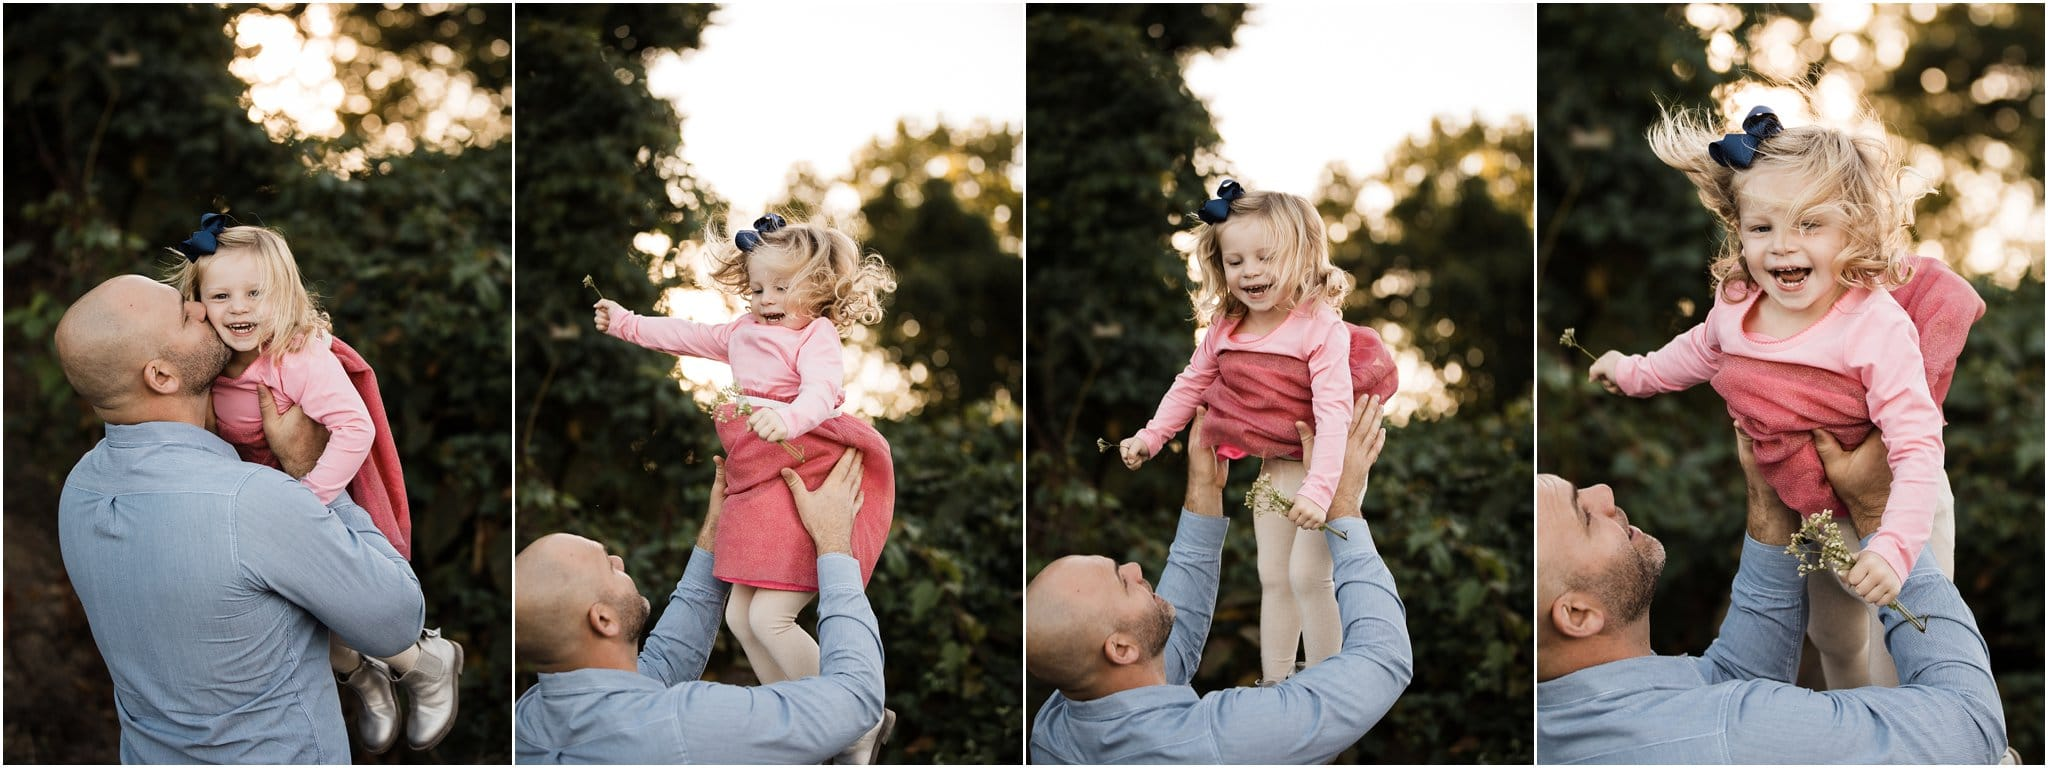 Dad tossing daughter in the air and laughing